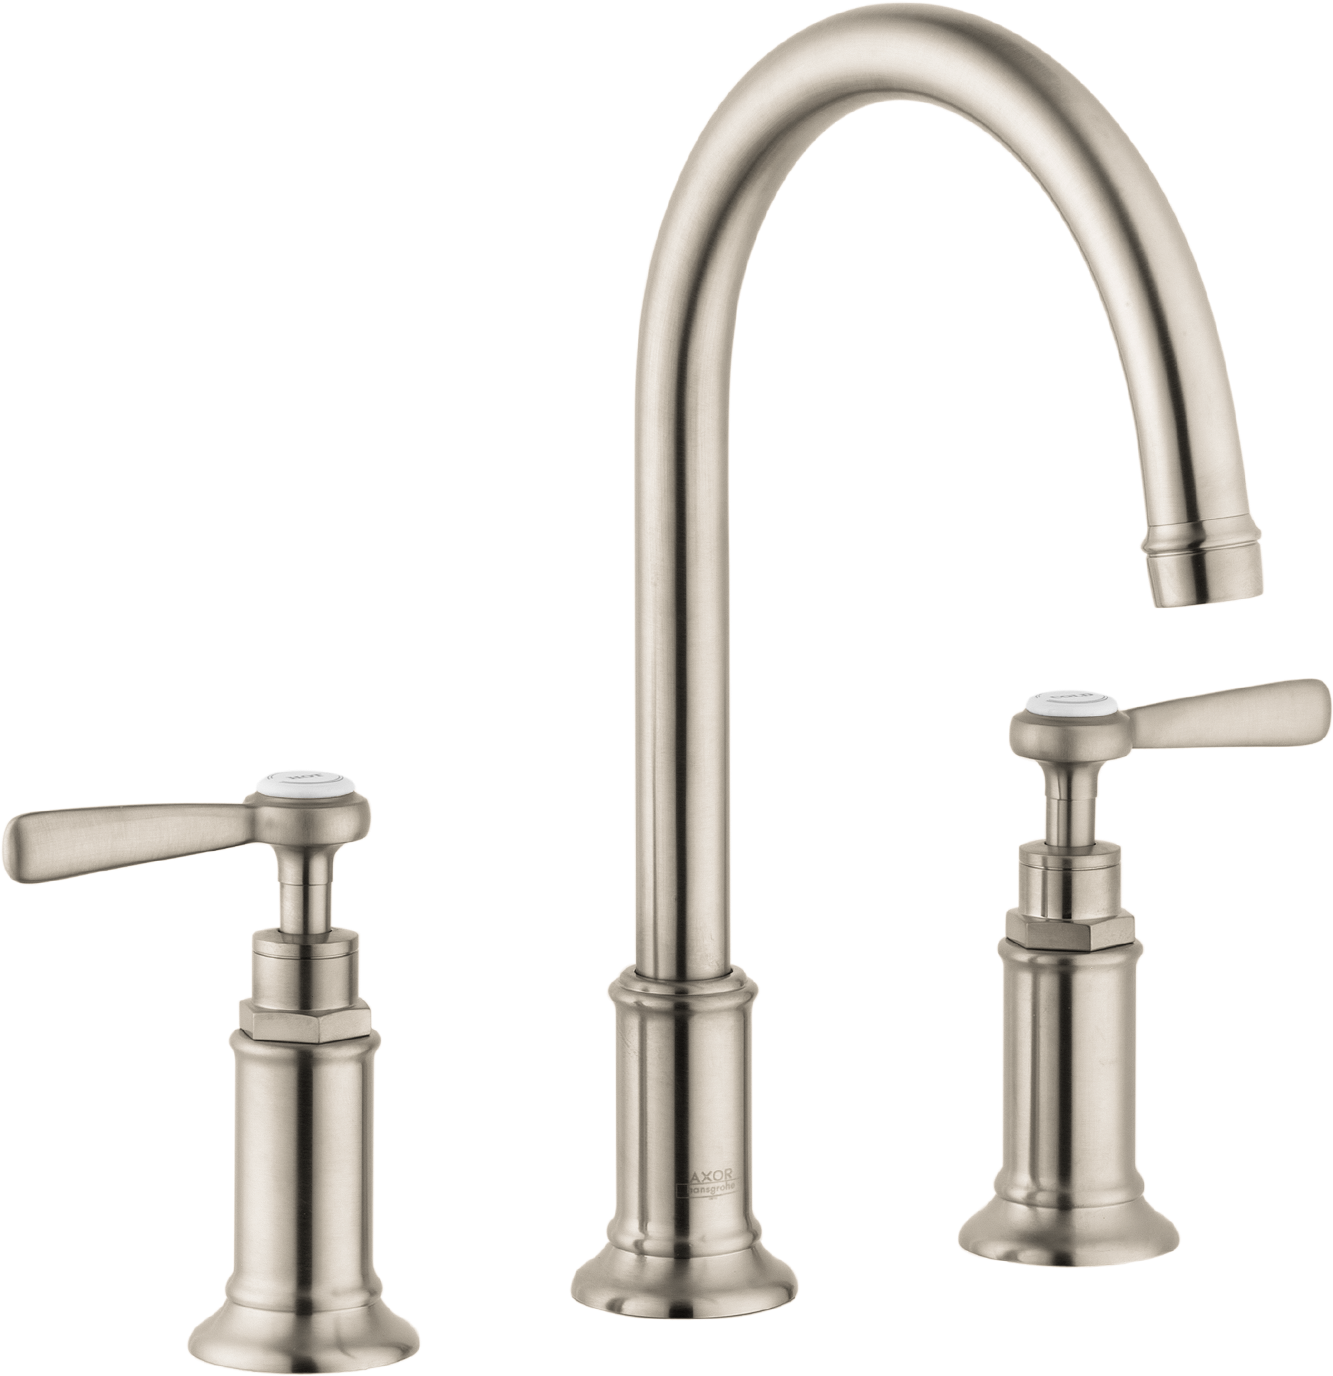 Axor AXOR Montreux Widespread Faucet with Lever Handles, 1.2 GPM